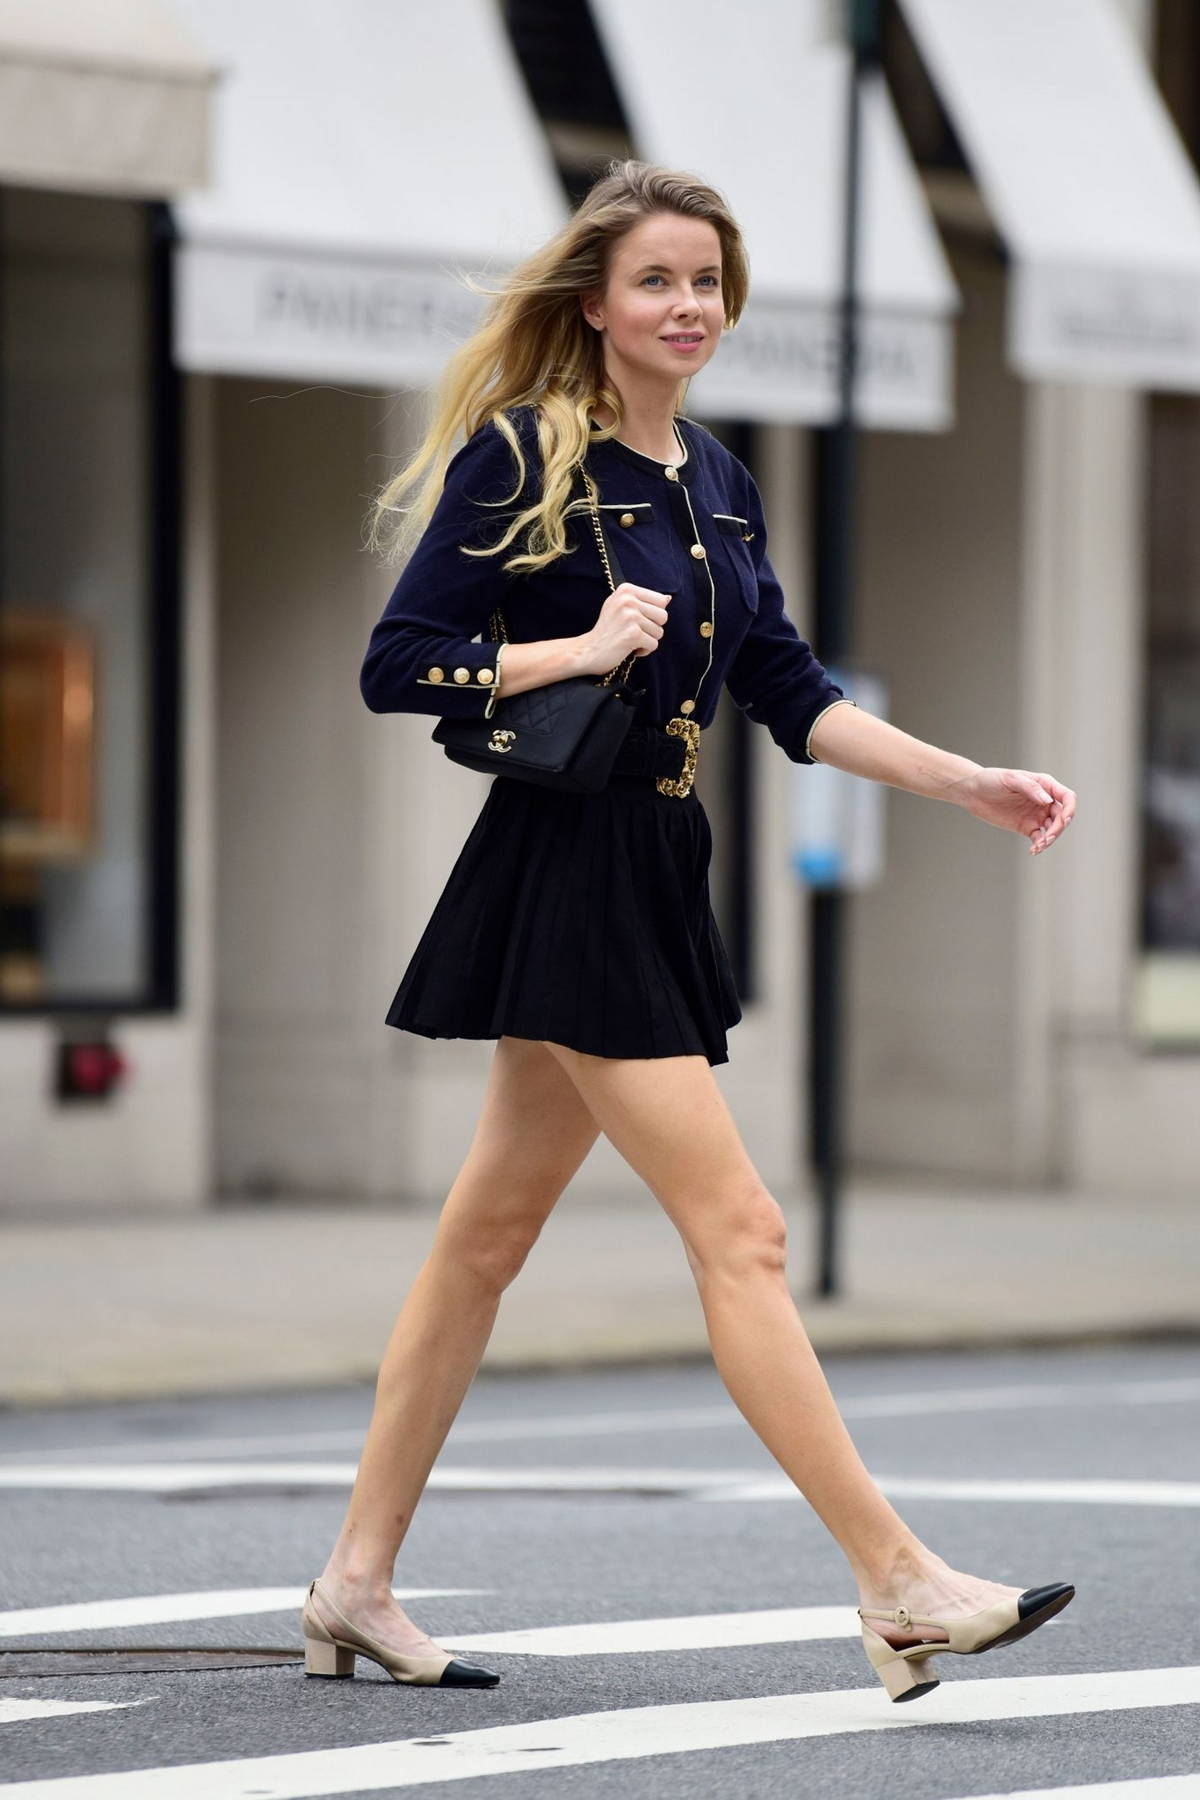 Louisa Warwick puts on a leggy display in a black mini skirt while stepping out in New York City